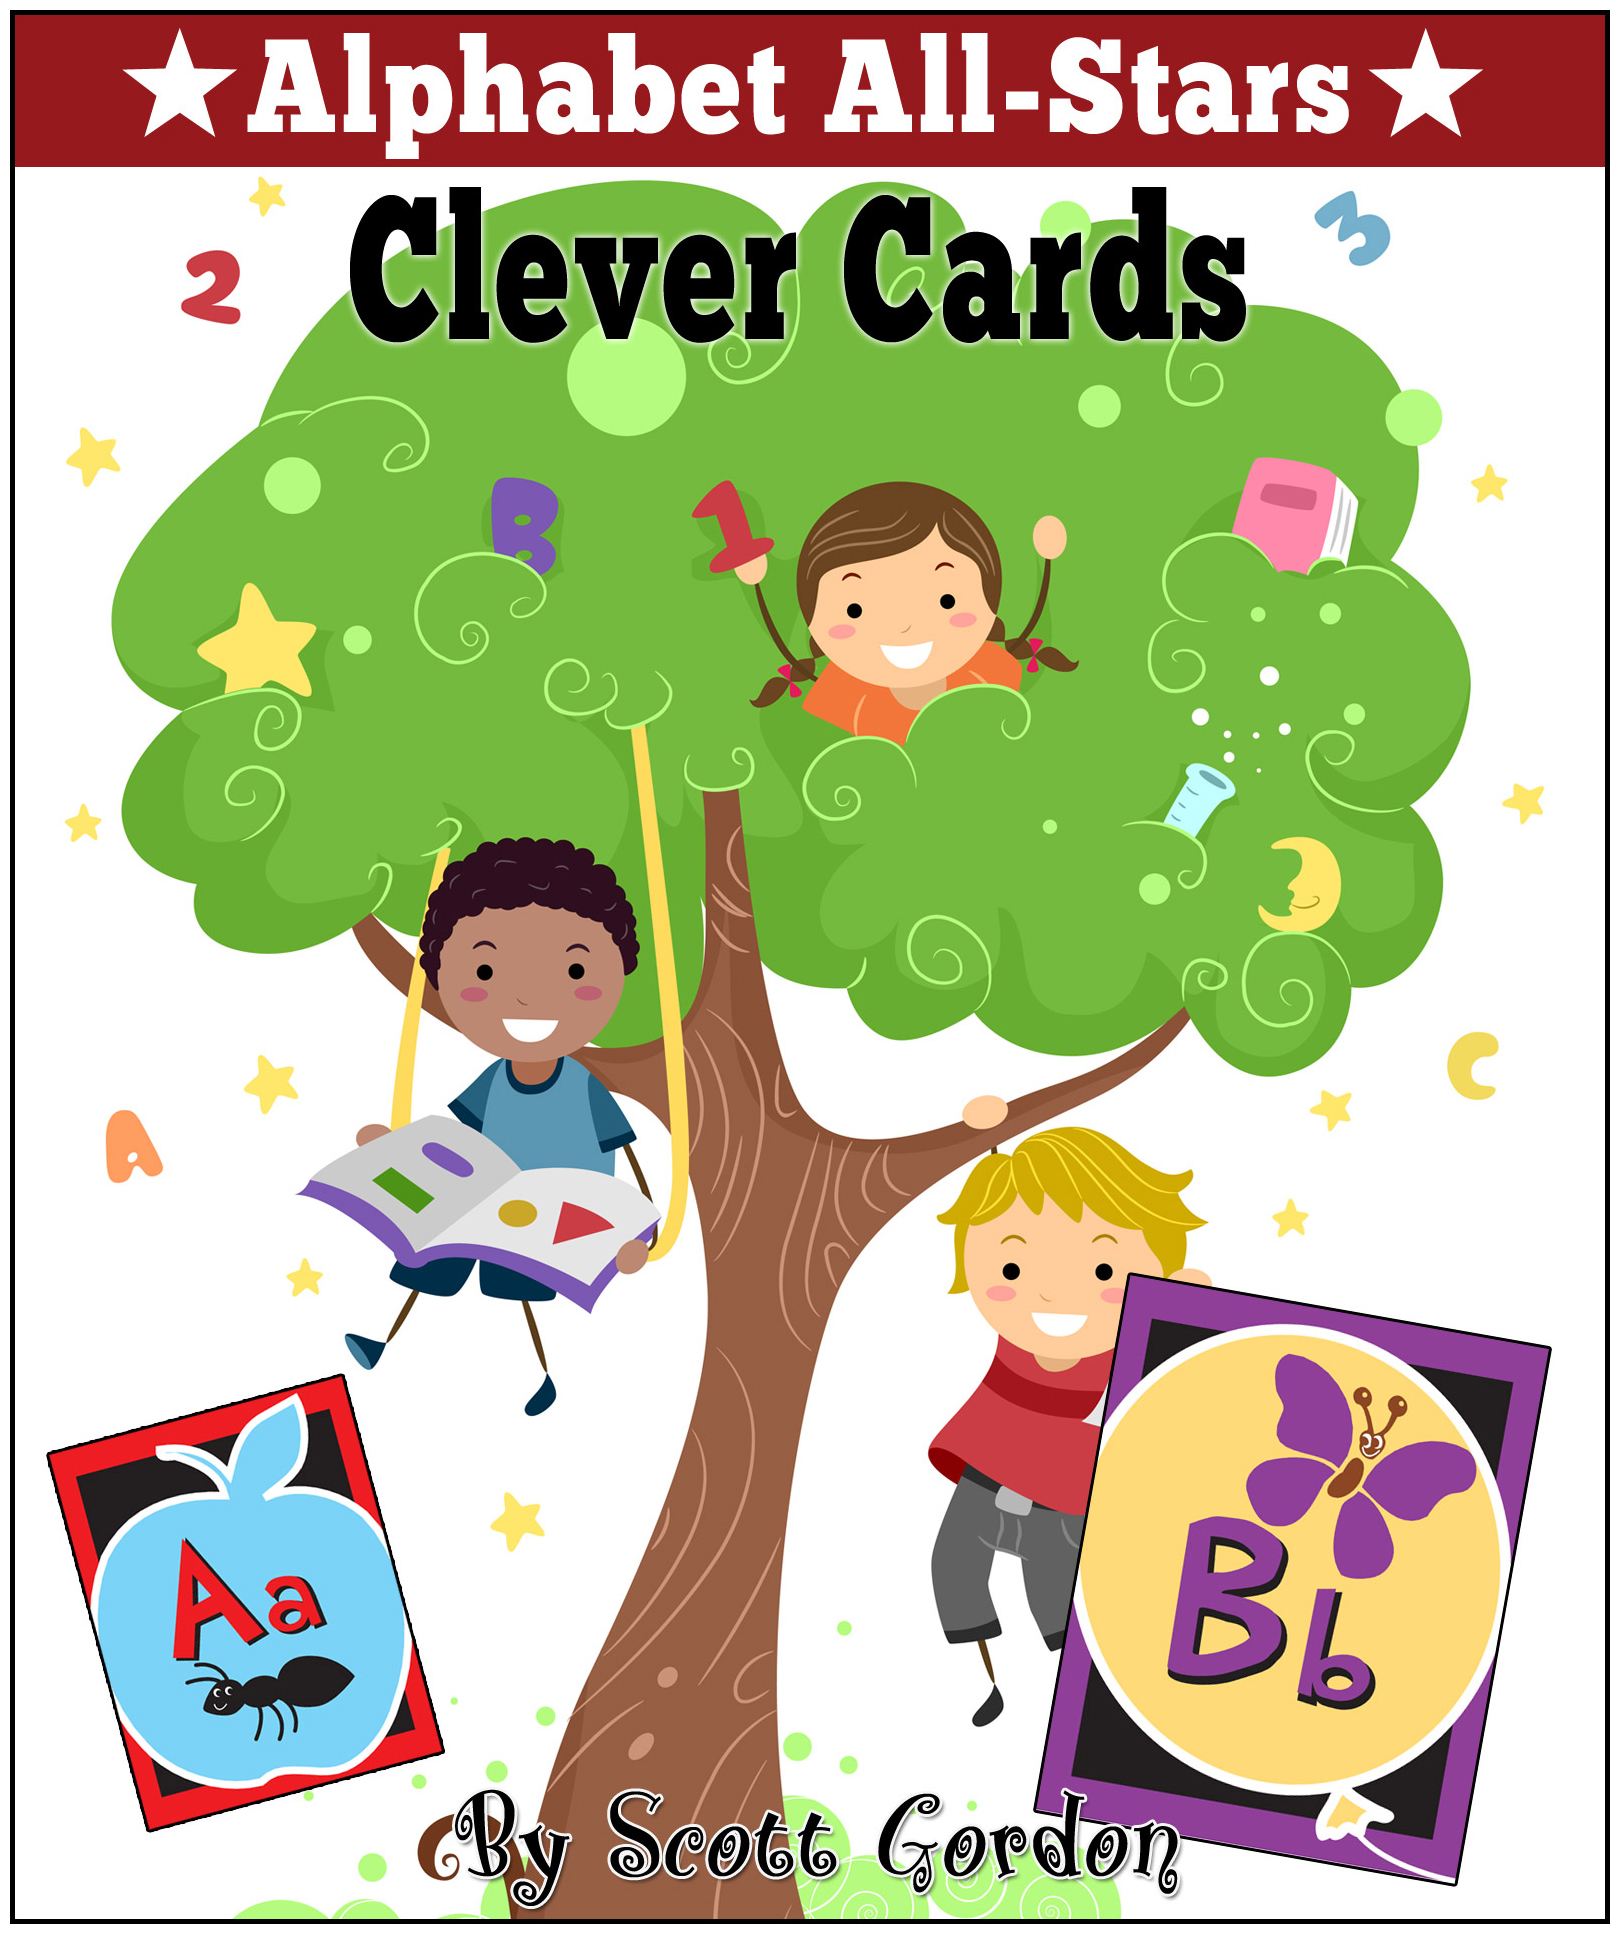 Alphabet All-Stars: Clever Cards